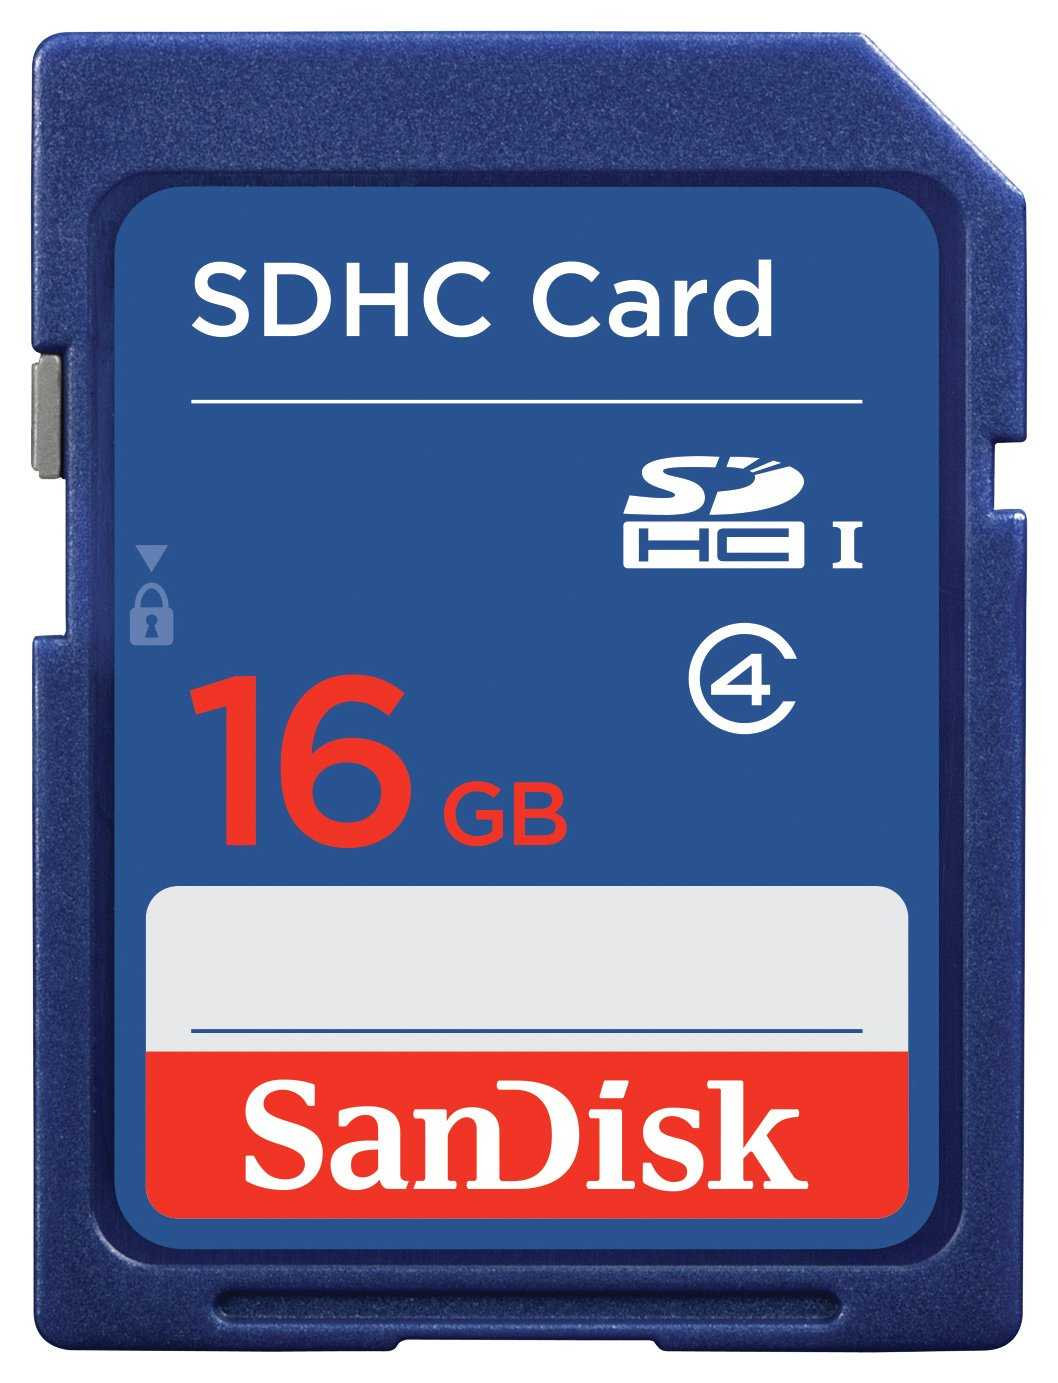 SanDisk - Blue SD - Memory Card - 16GB